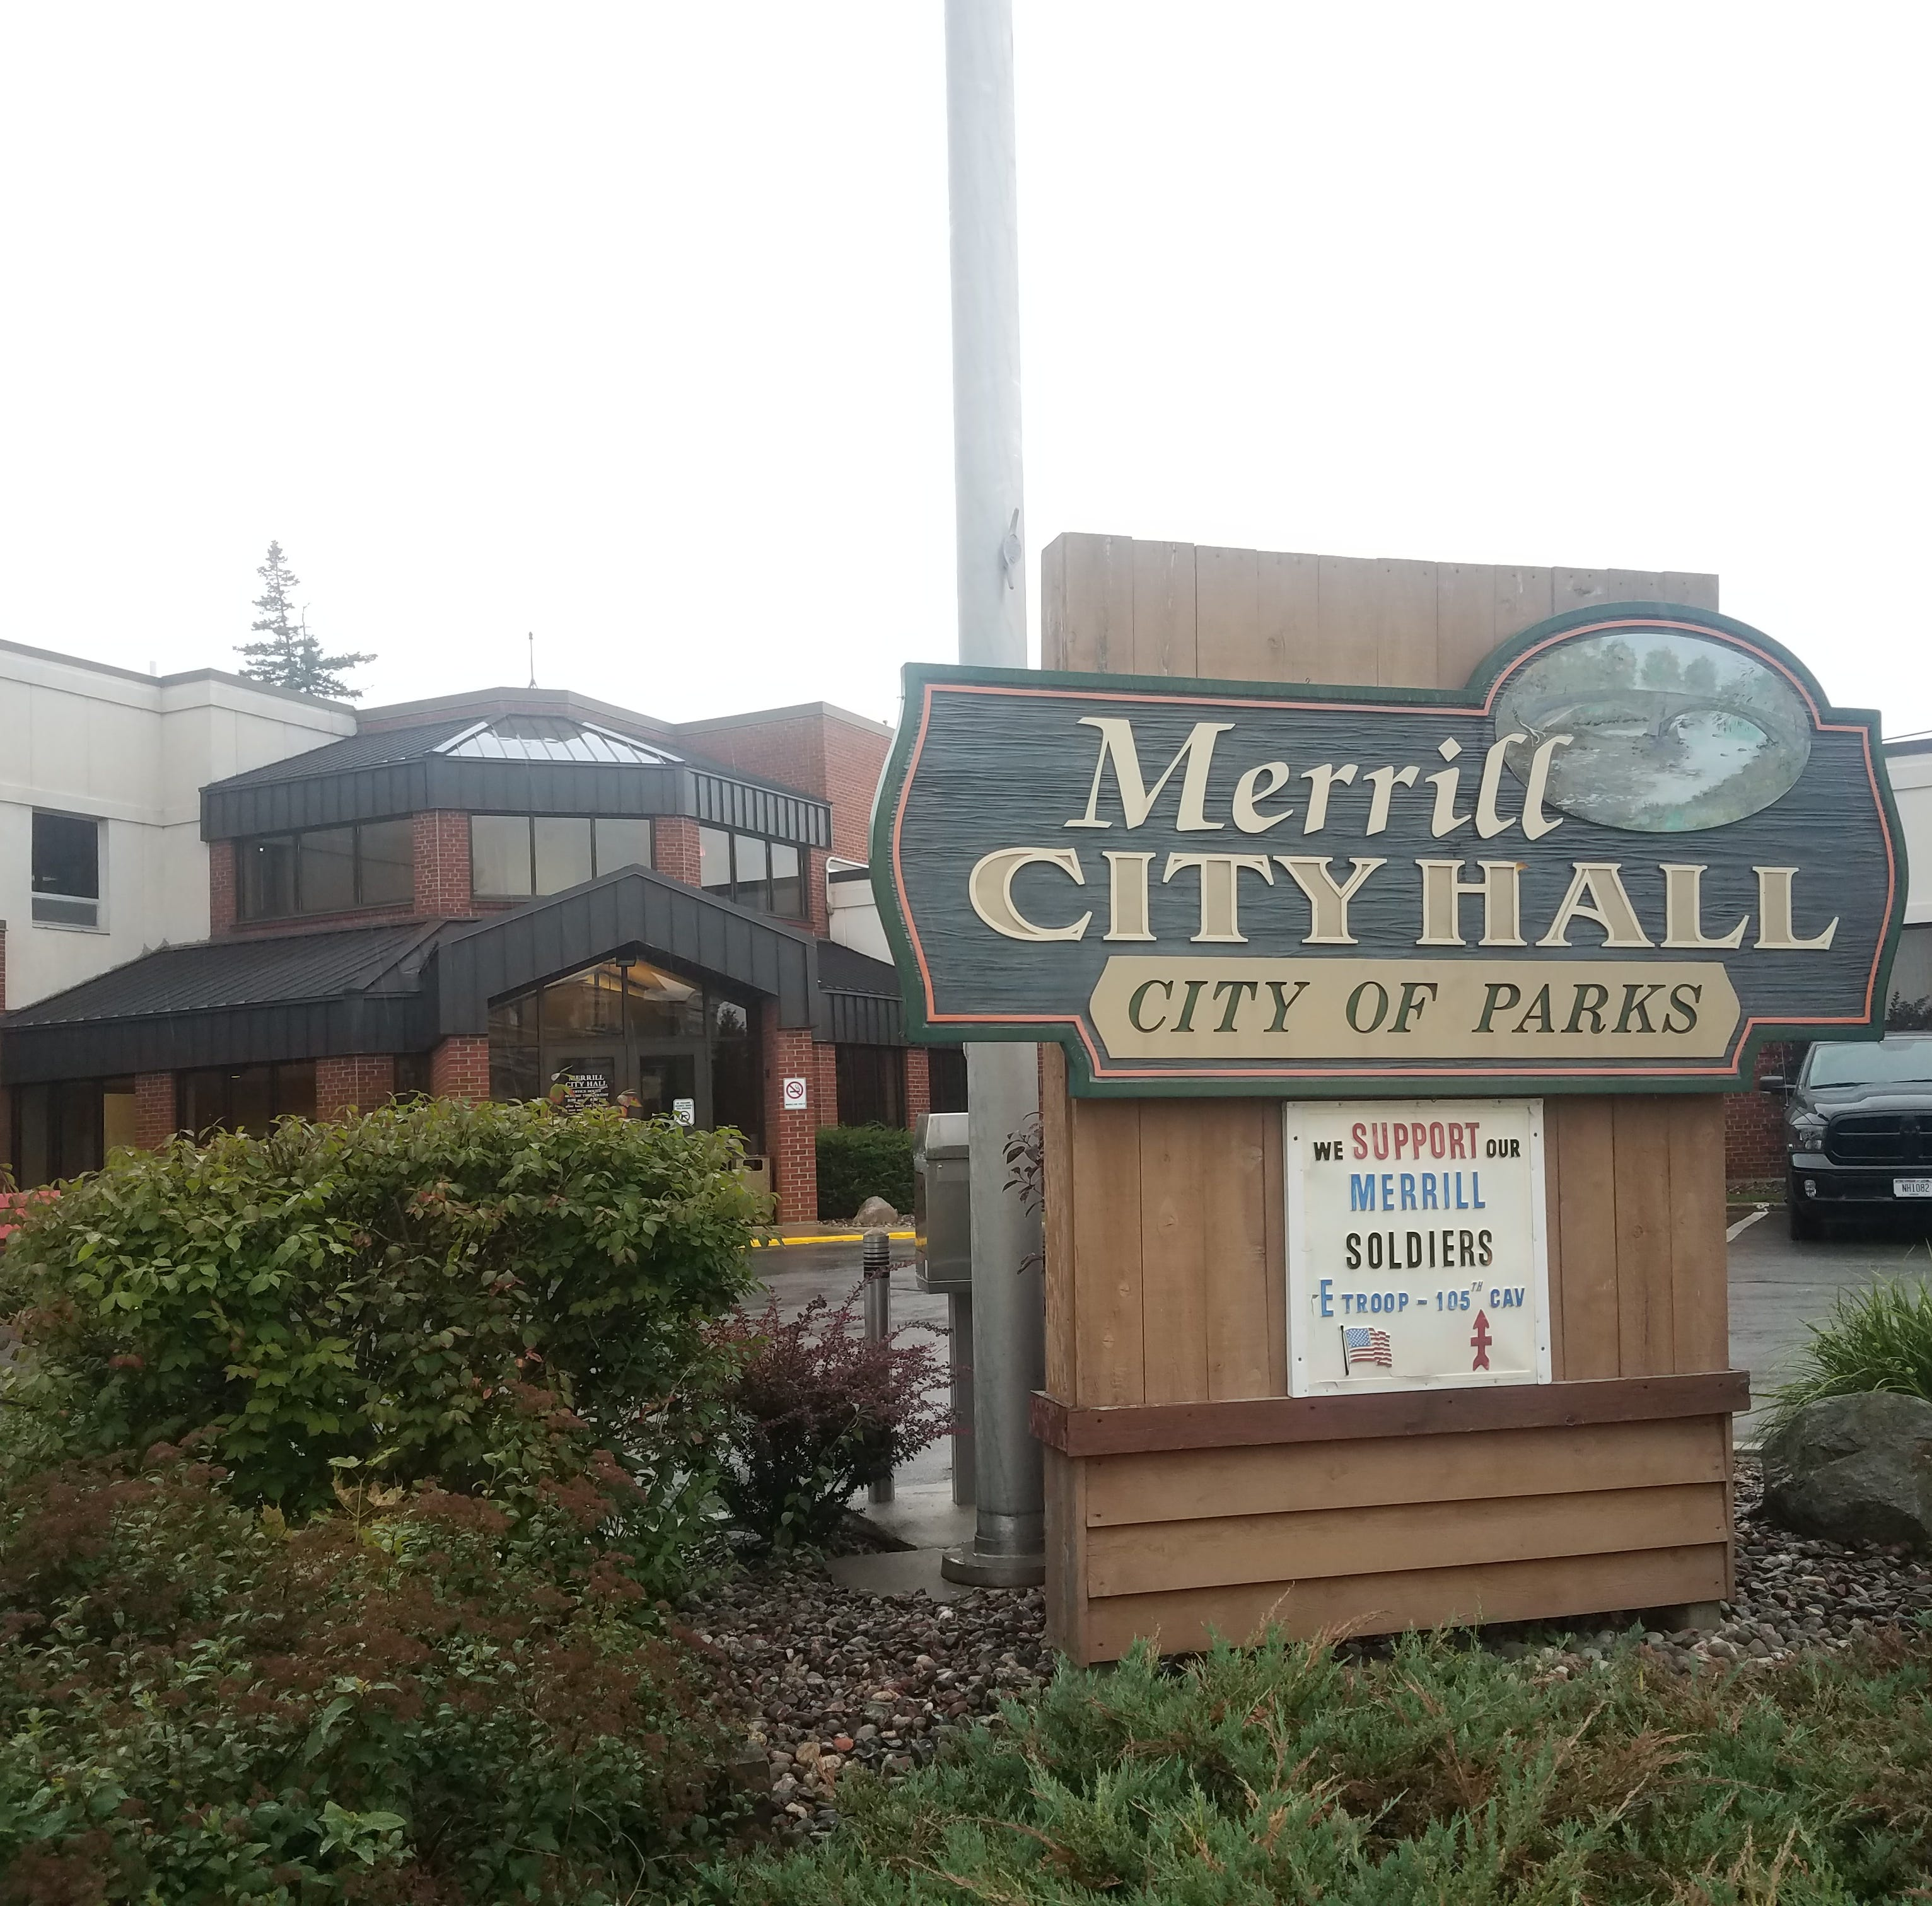 Merrill finance director given improvement plan, may lose job if she doesn't comply